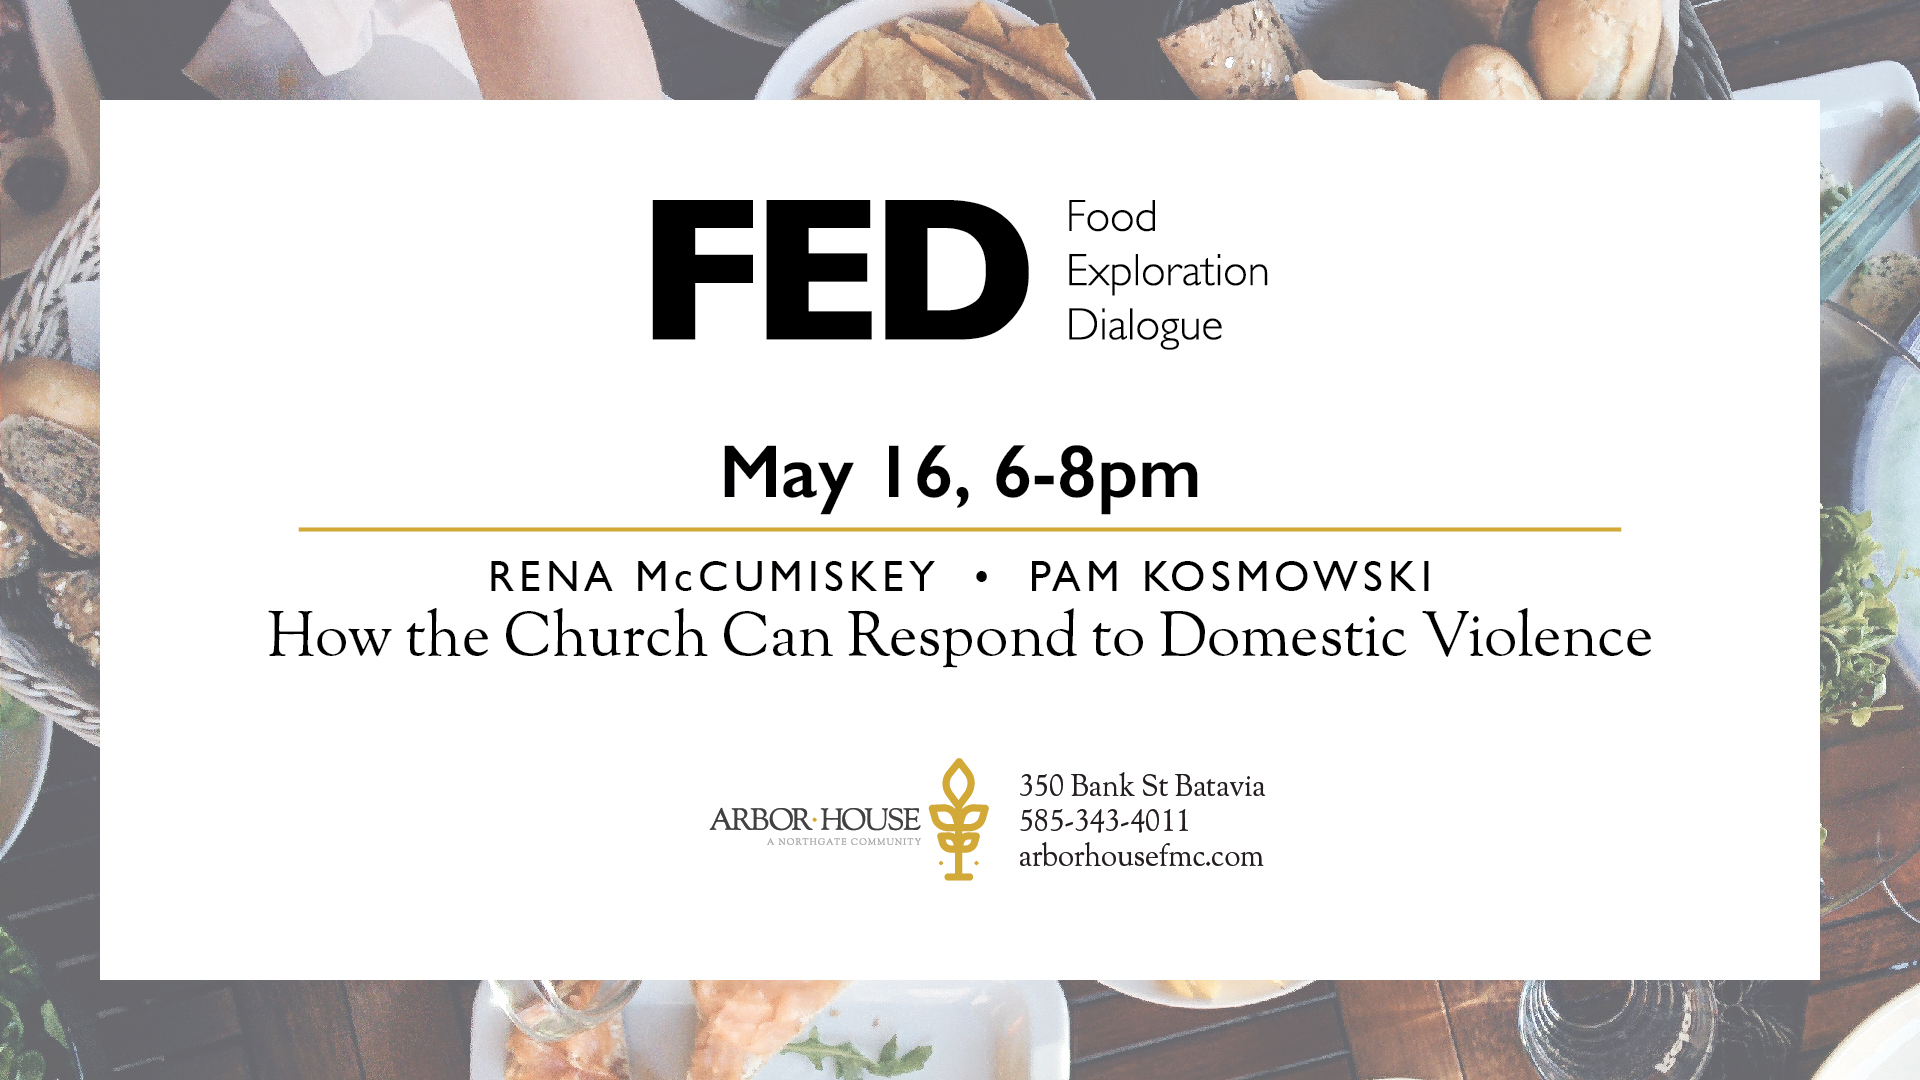 FED Talk May 16 at Arbor House Free Methodist Church